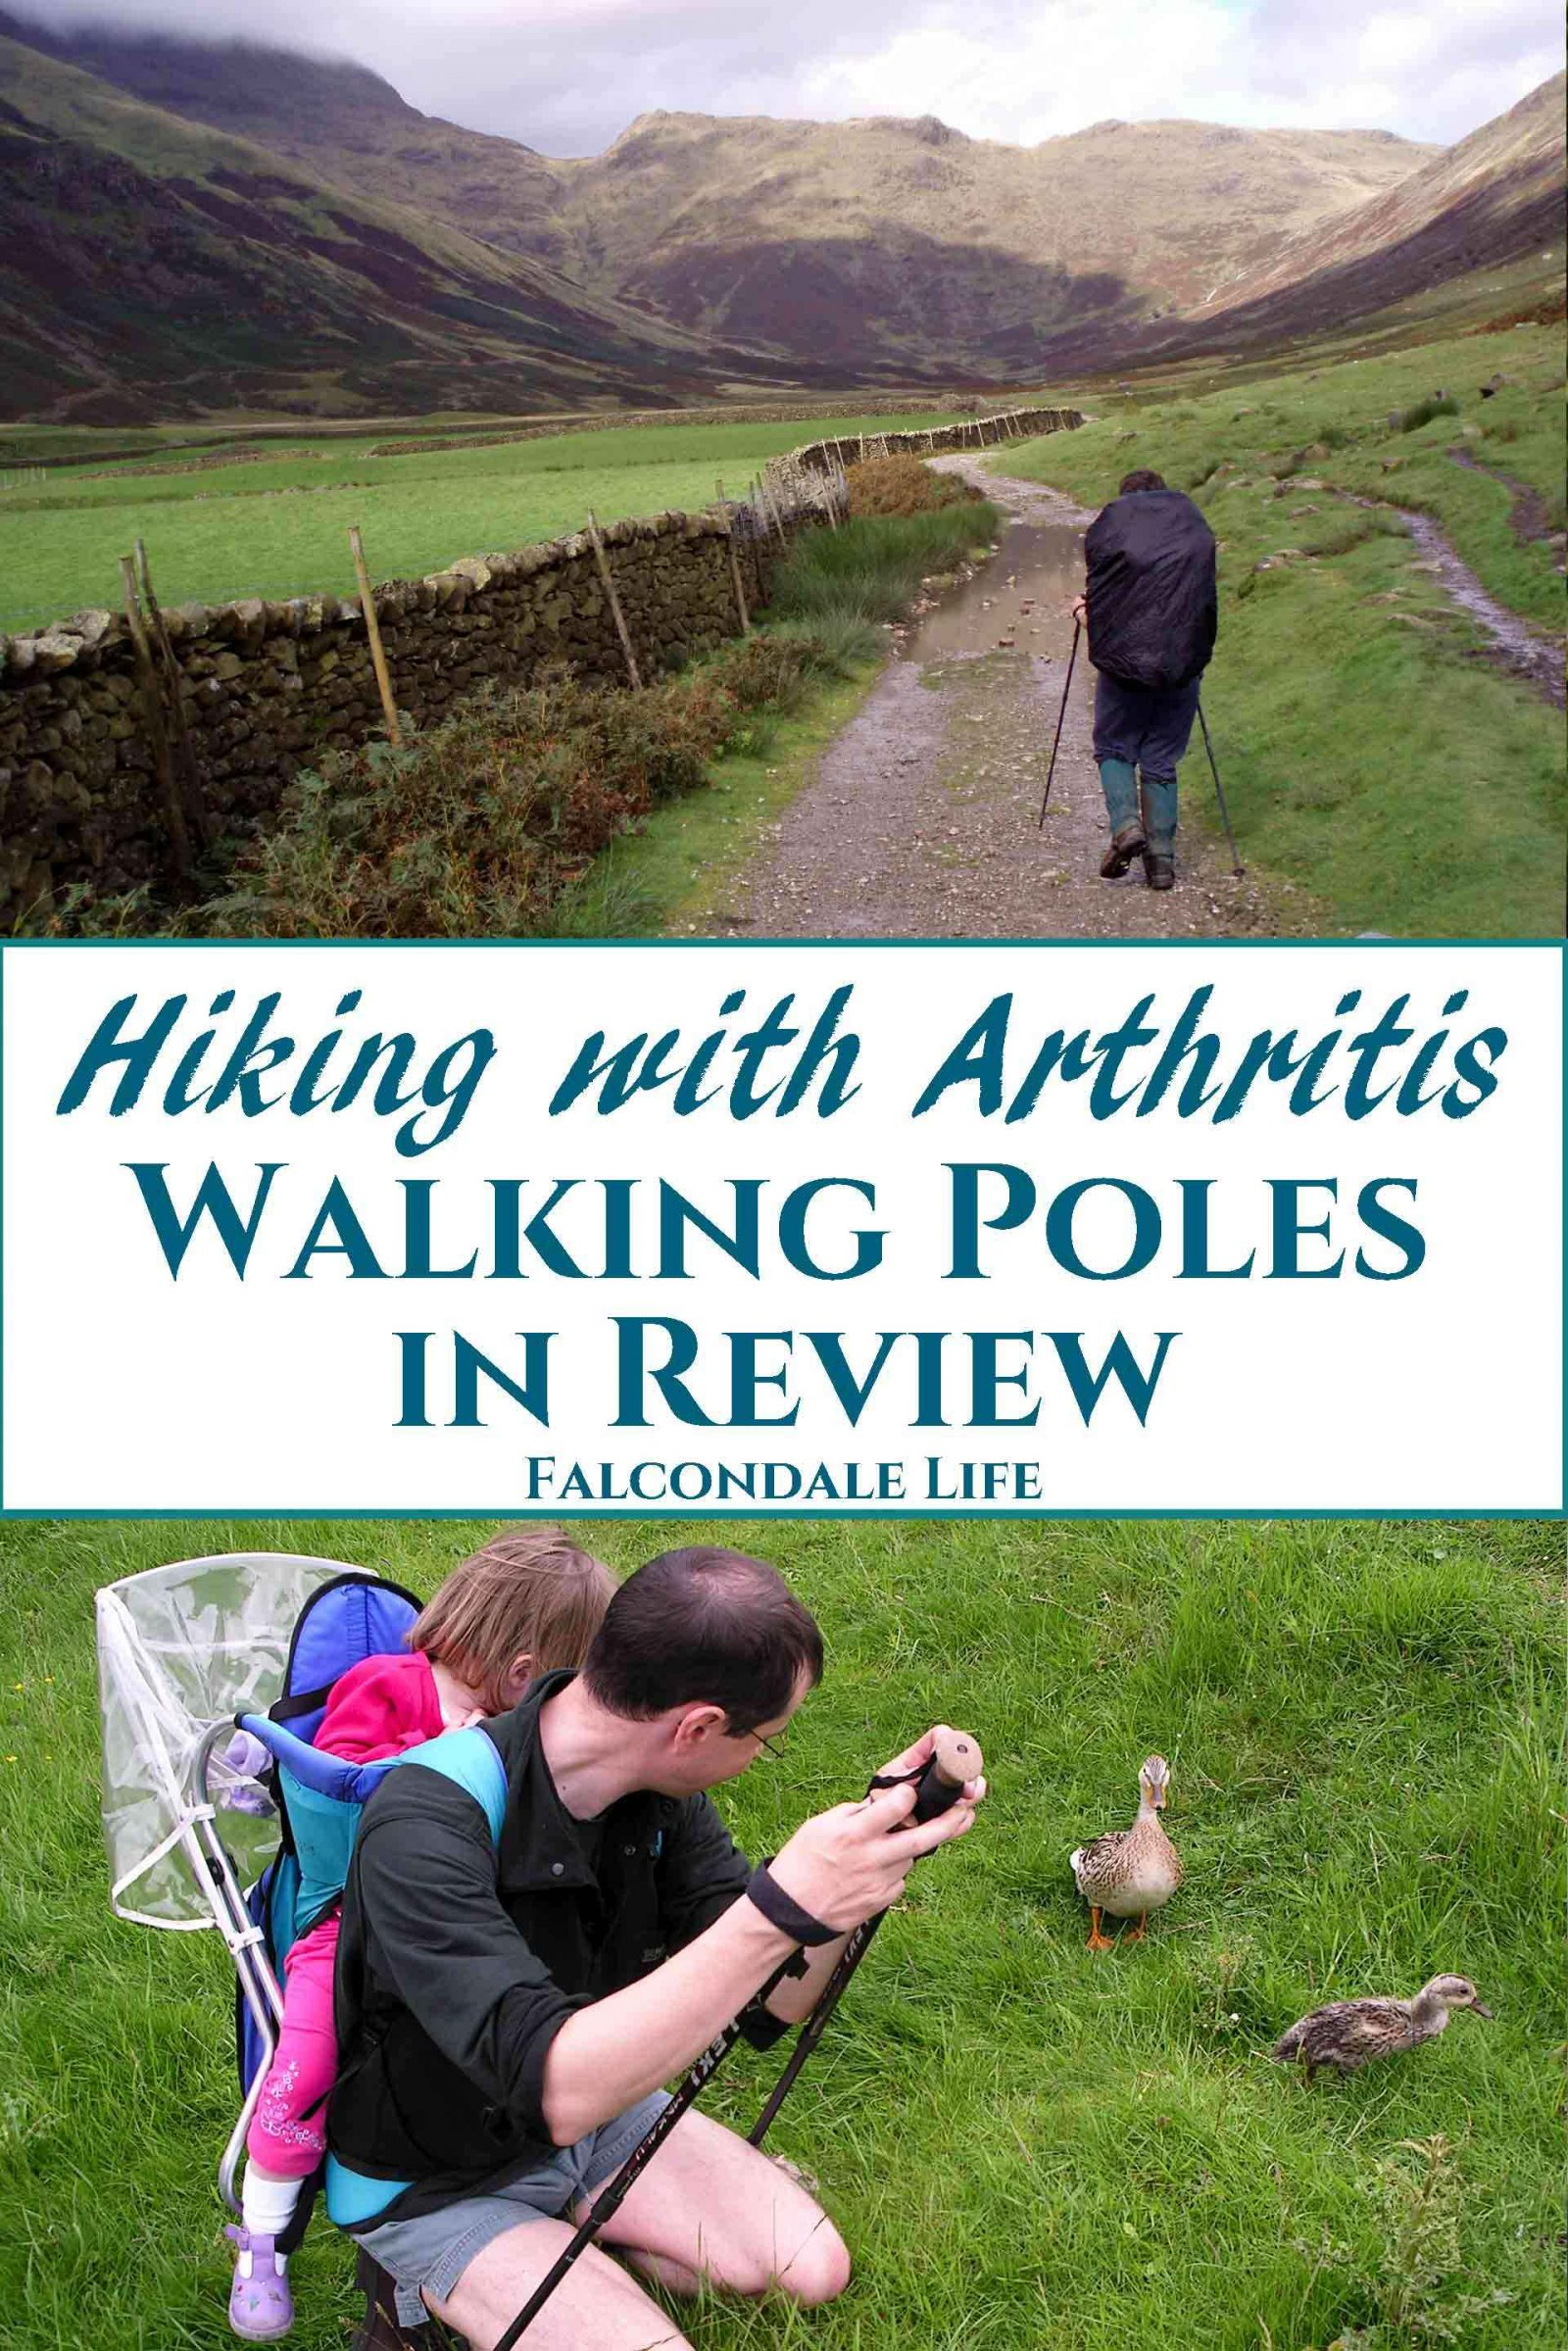 A review of walking poles for hiking with arthritis or joint pain. On Falcondale Life blog. How to use walking poles and how could walking poles help on a trek or ramble. Image description: man with toddler in back carrier using a pair of walking poles., and someone hiking in the Lake district with walking poles, plus blog title.